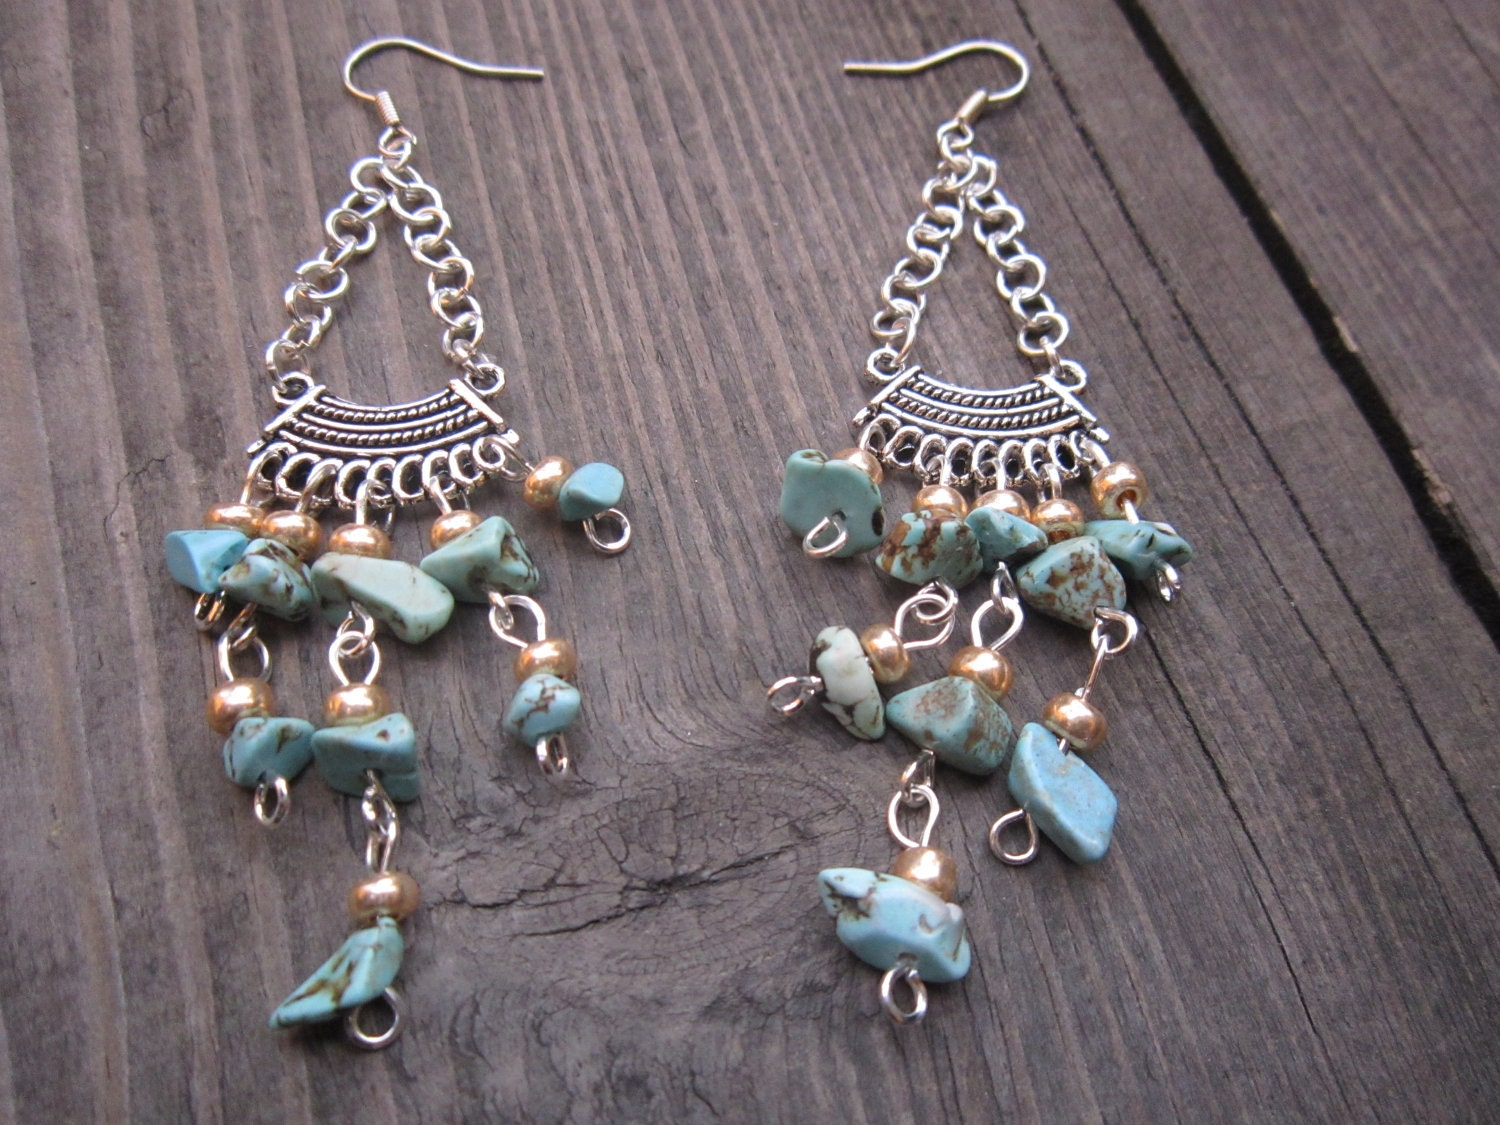 Dangle earrings with irregular turquoise stones, Beach earrings. - CzarnyKotDesign